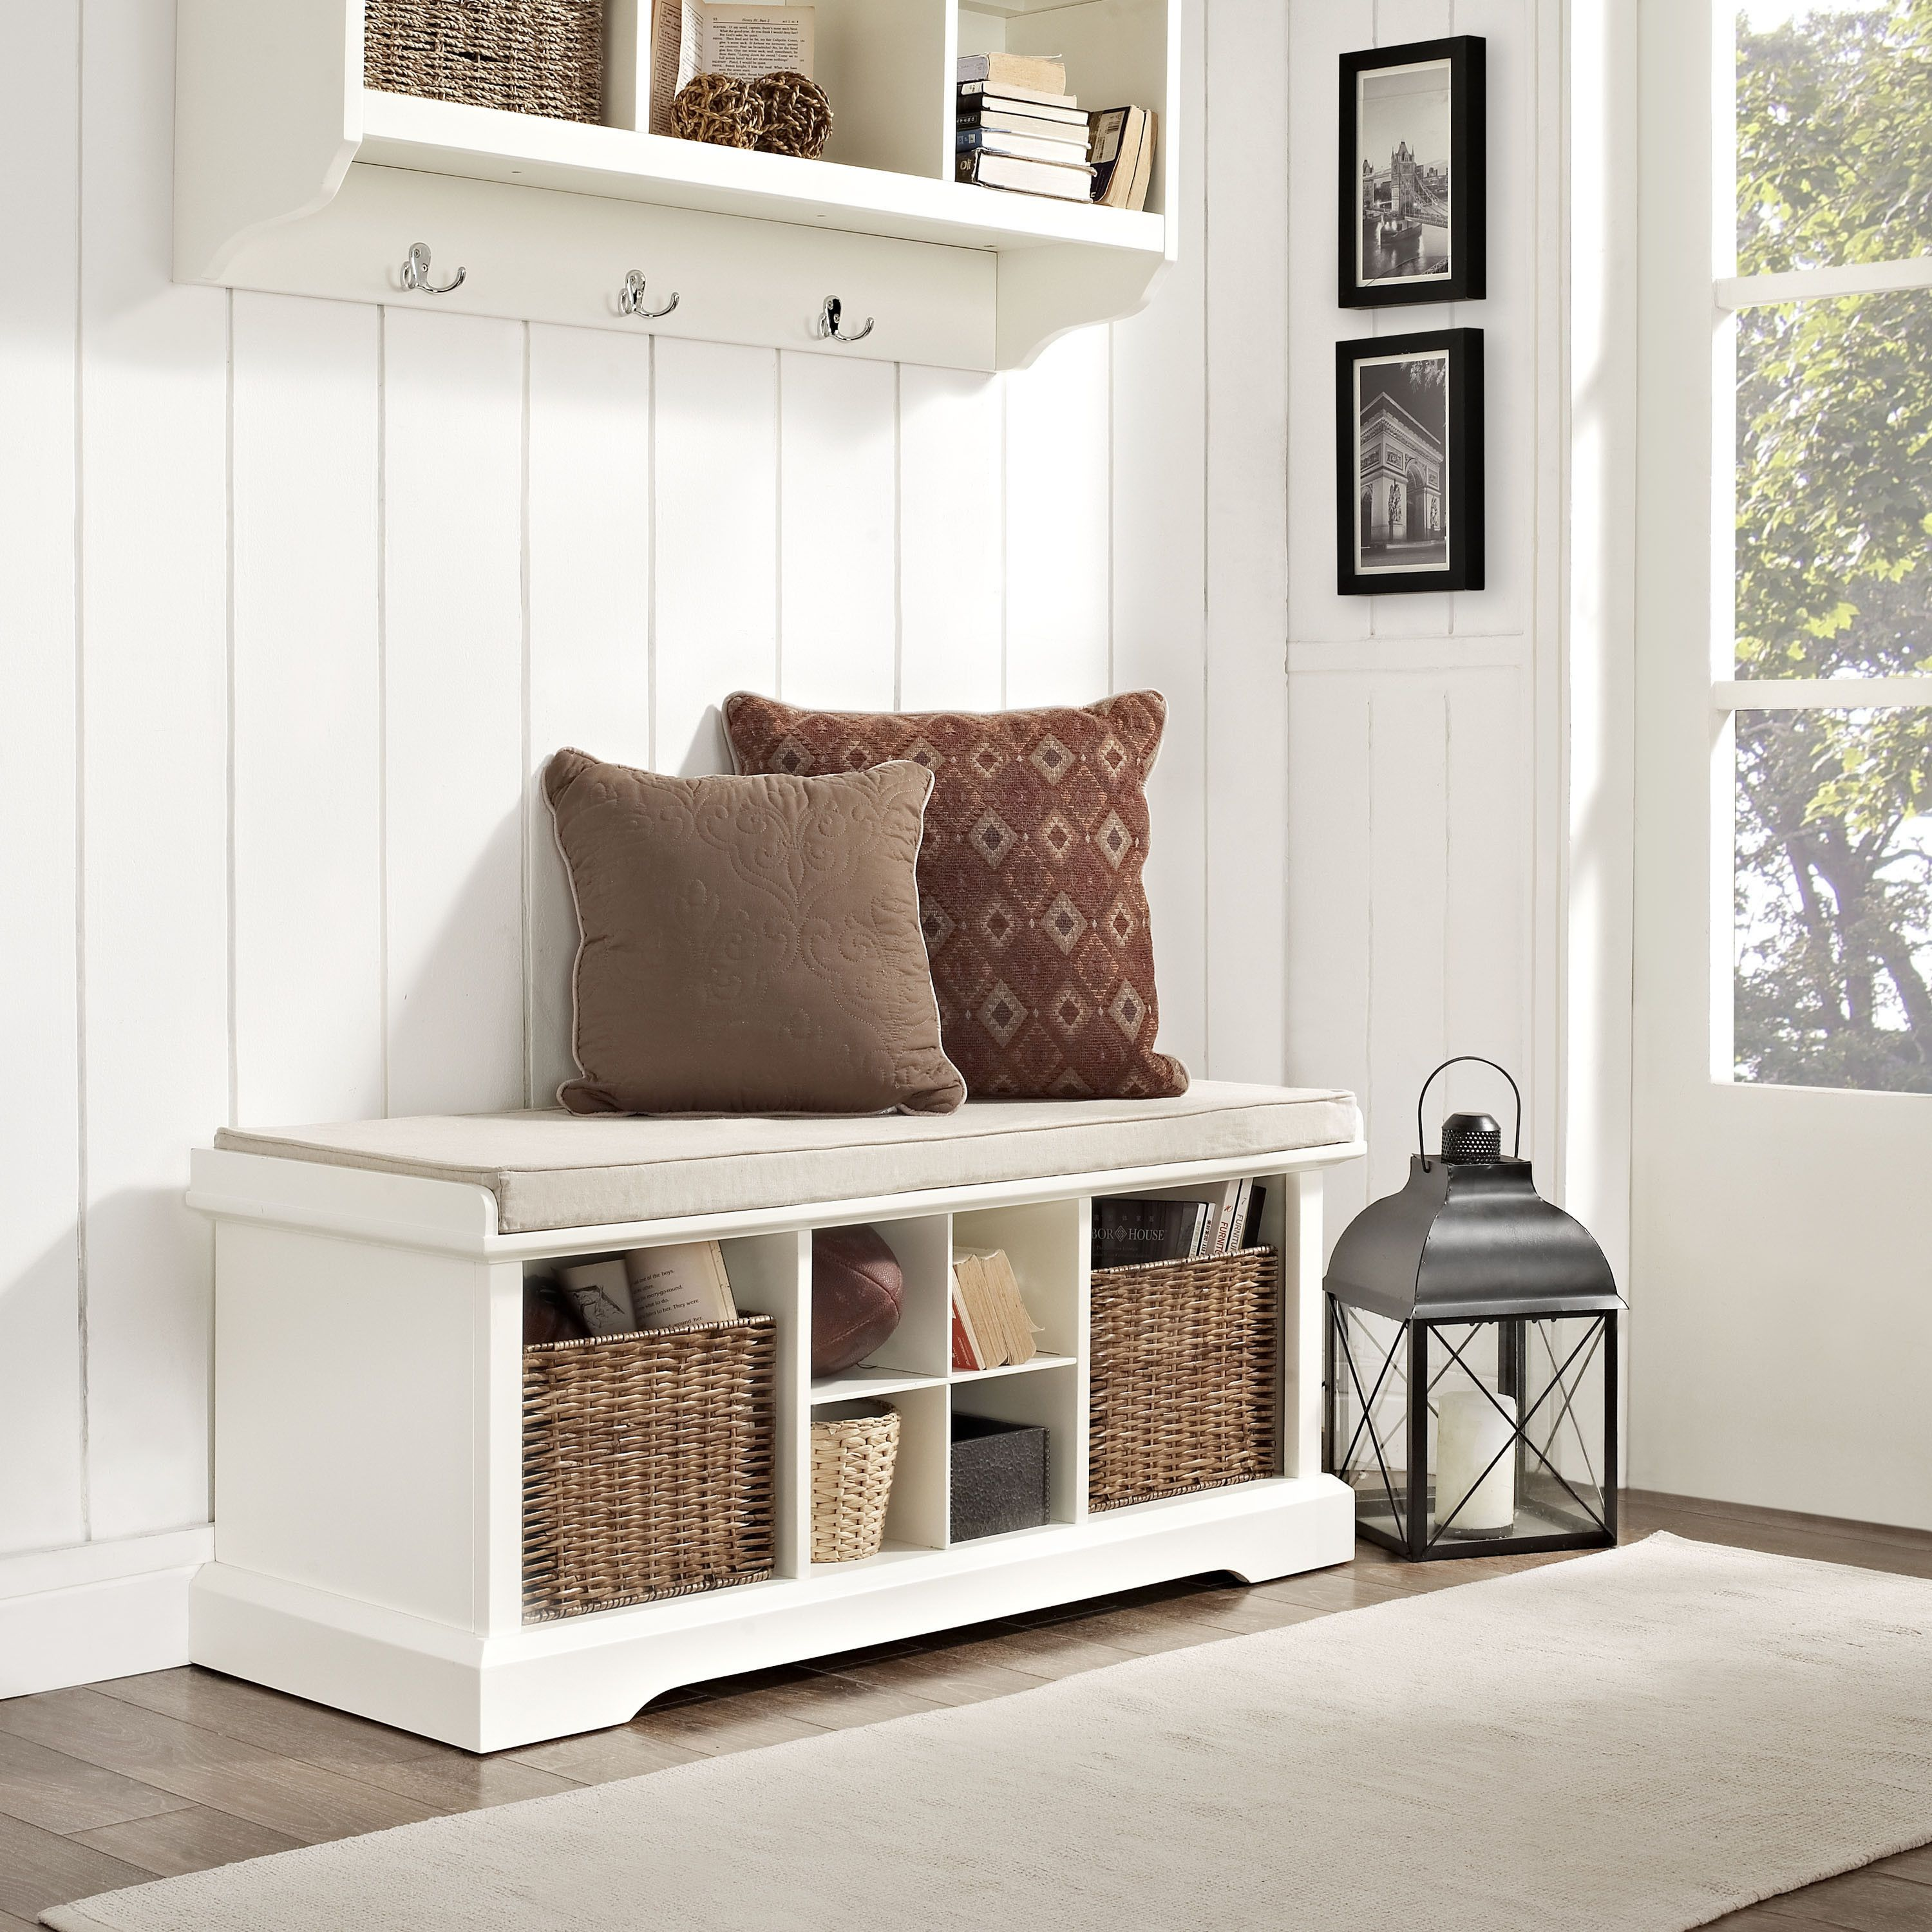 2 girls 1 year 730 moments to share entryway bench idea inspiration